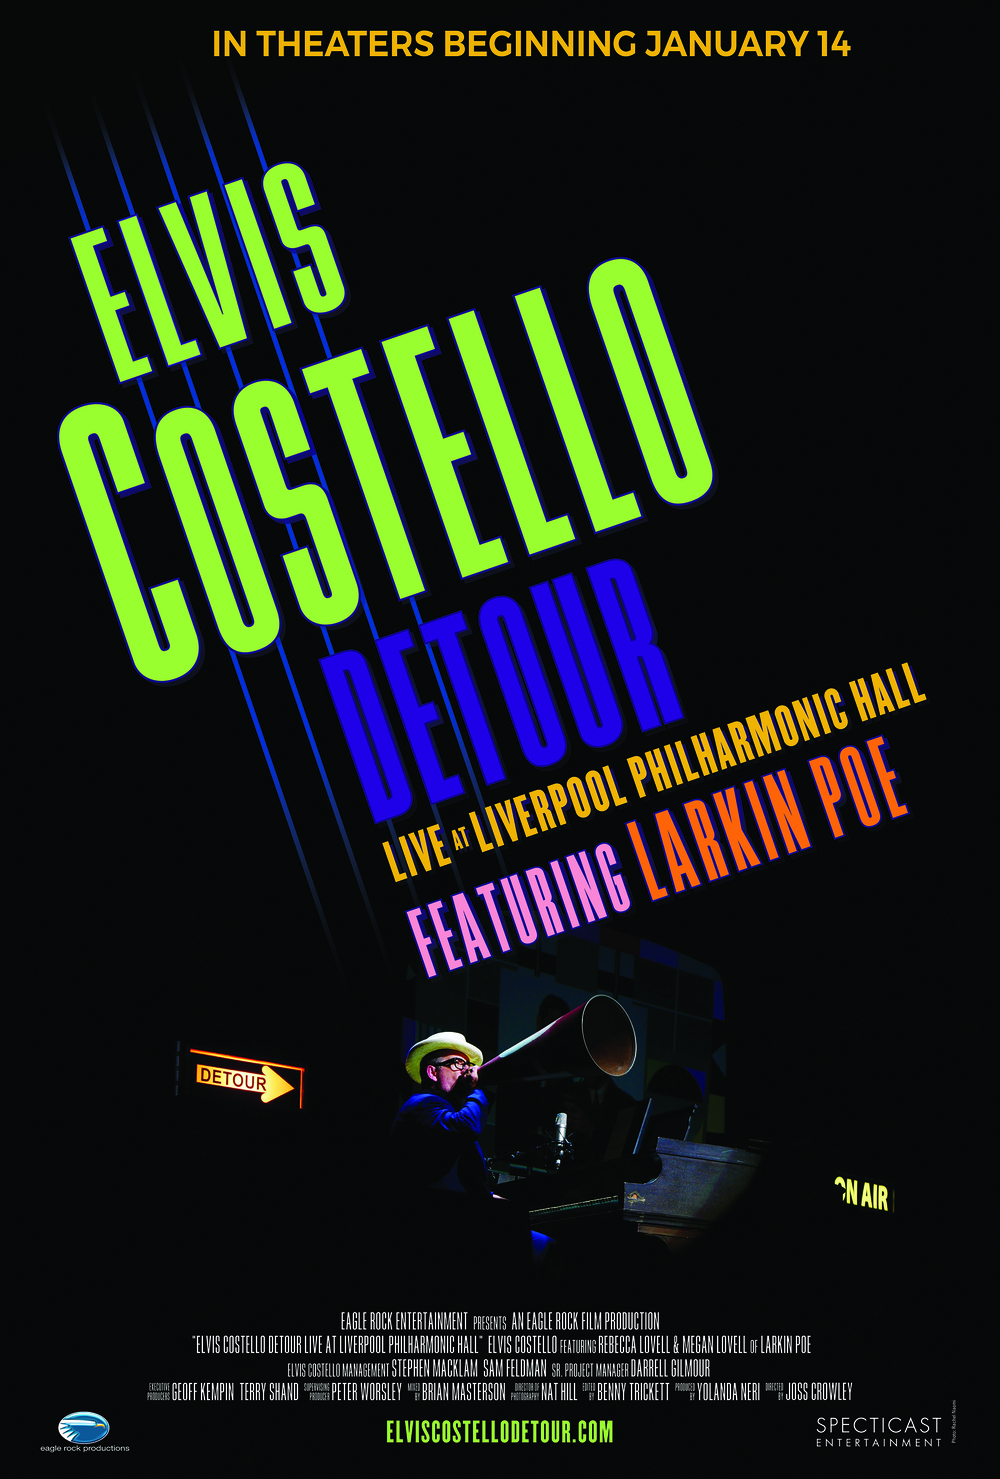 Theatrical Poster/Cover for Elvis Costello Detour: Live at Liverpool Philharmonic Hall